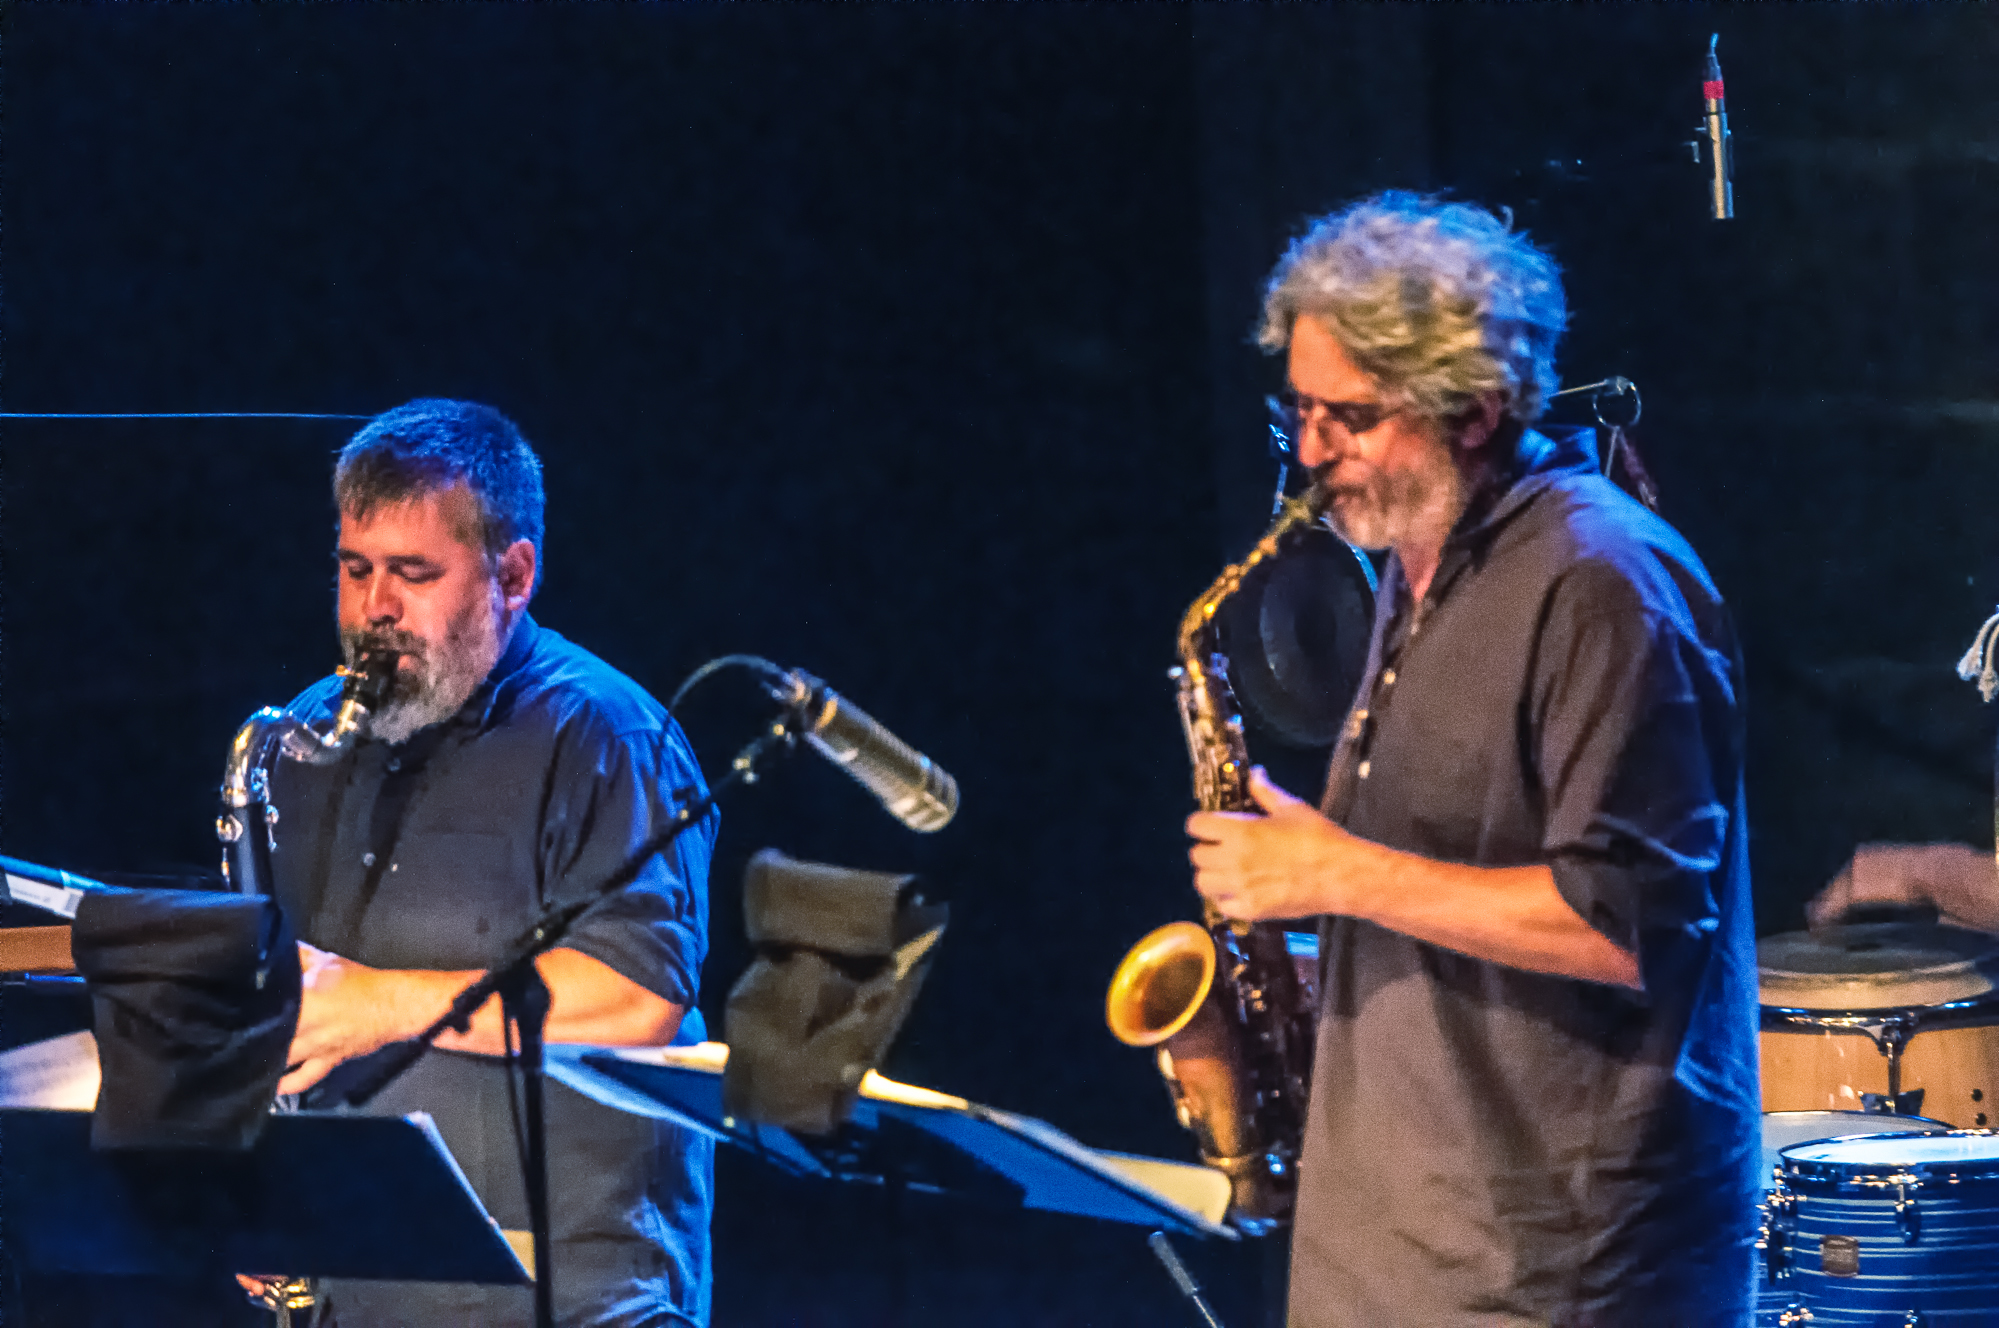 Oscar noriega and tim berne with snakeoil at the montreal international jazz festival 2013